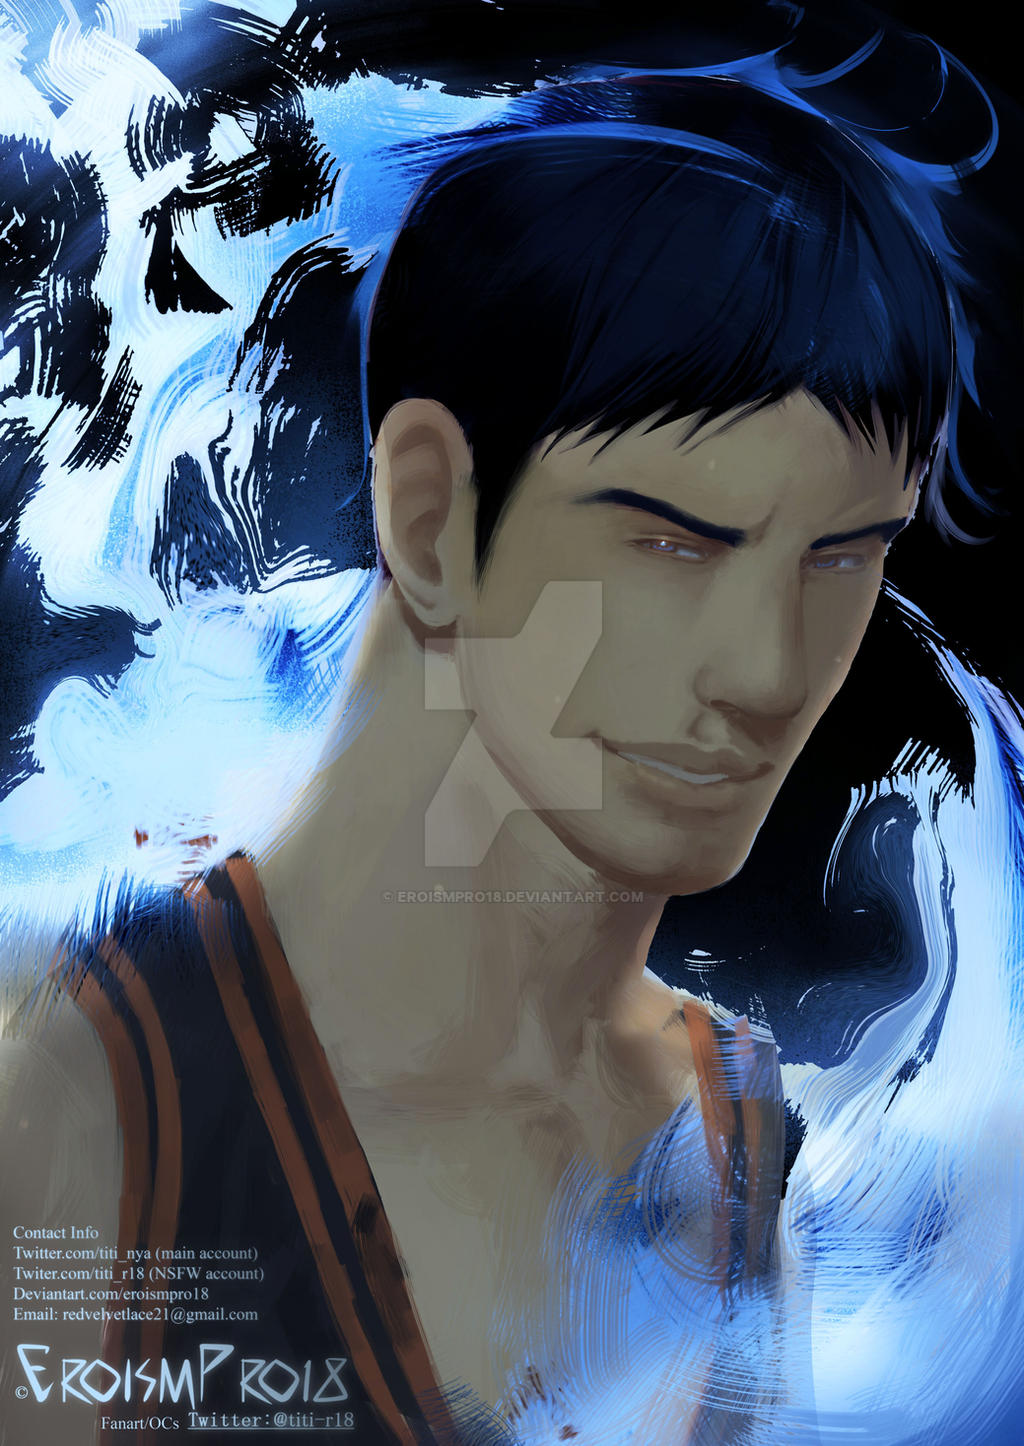 aomine daiki by eroismpro18 on deviantart